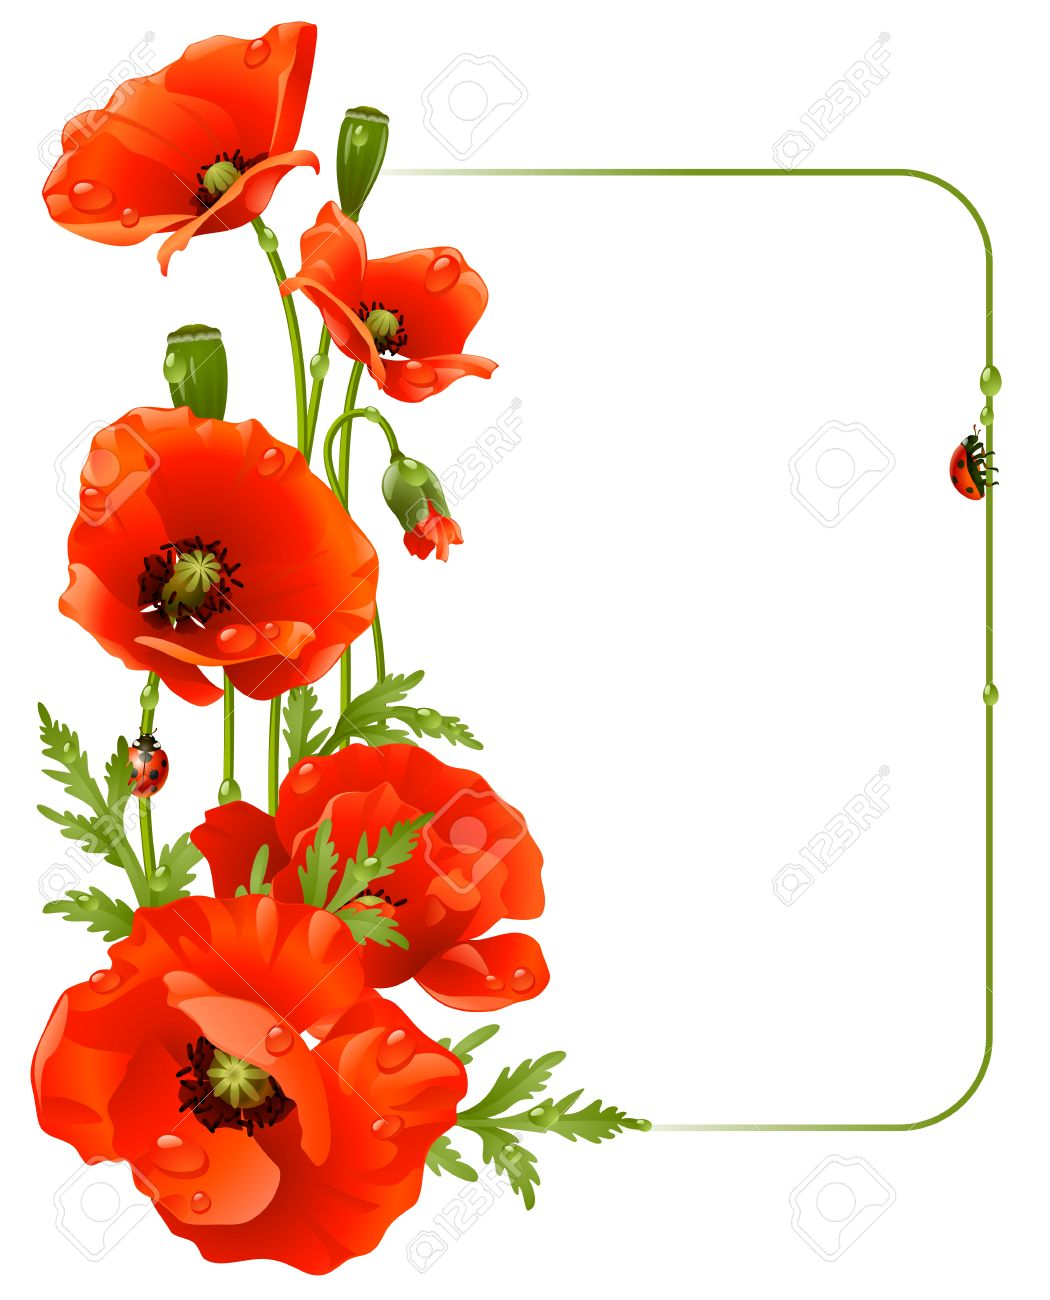 25309 poppy cliparts stock vector and royalty free poppy illustrations red poppy frame illustration mightylinksfo Choice Image